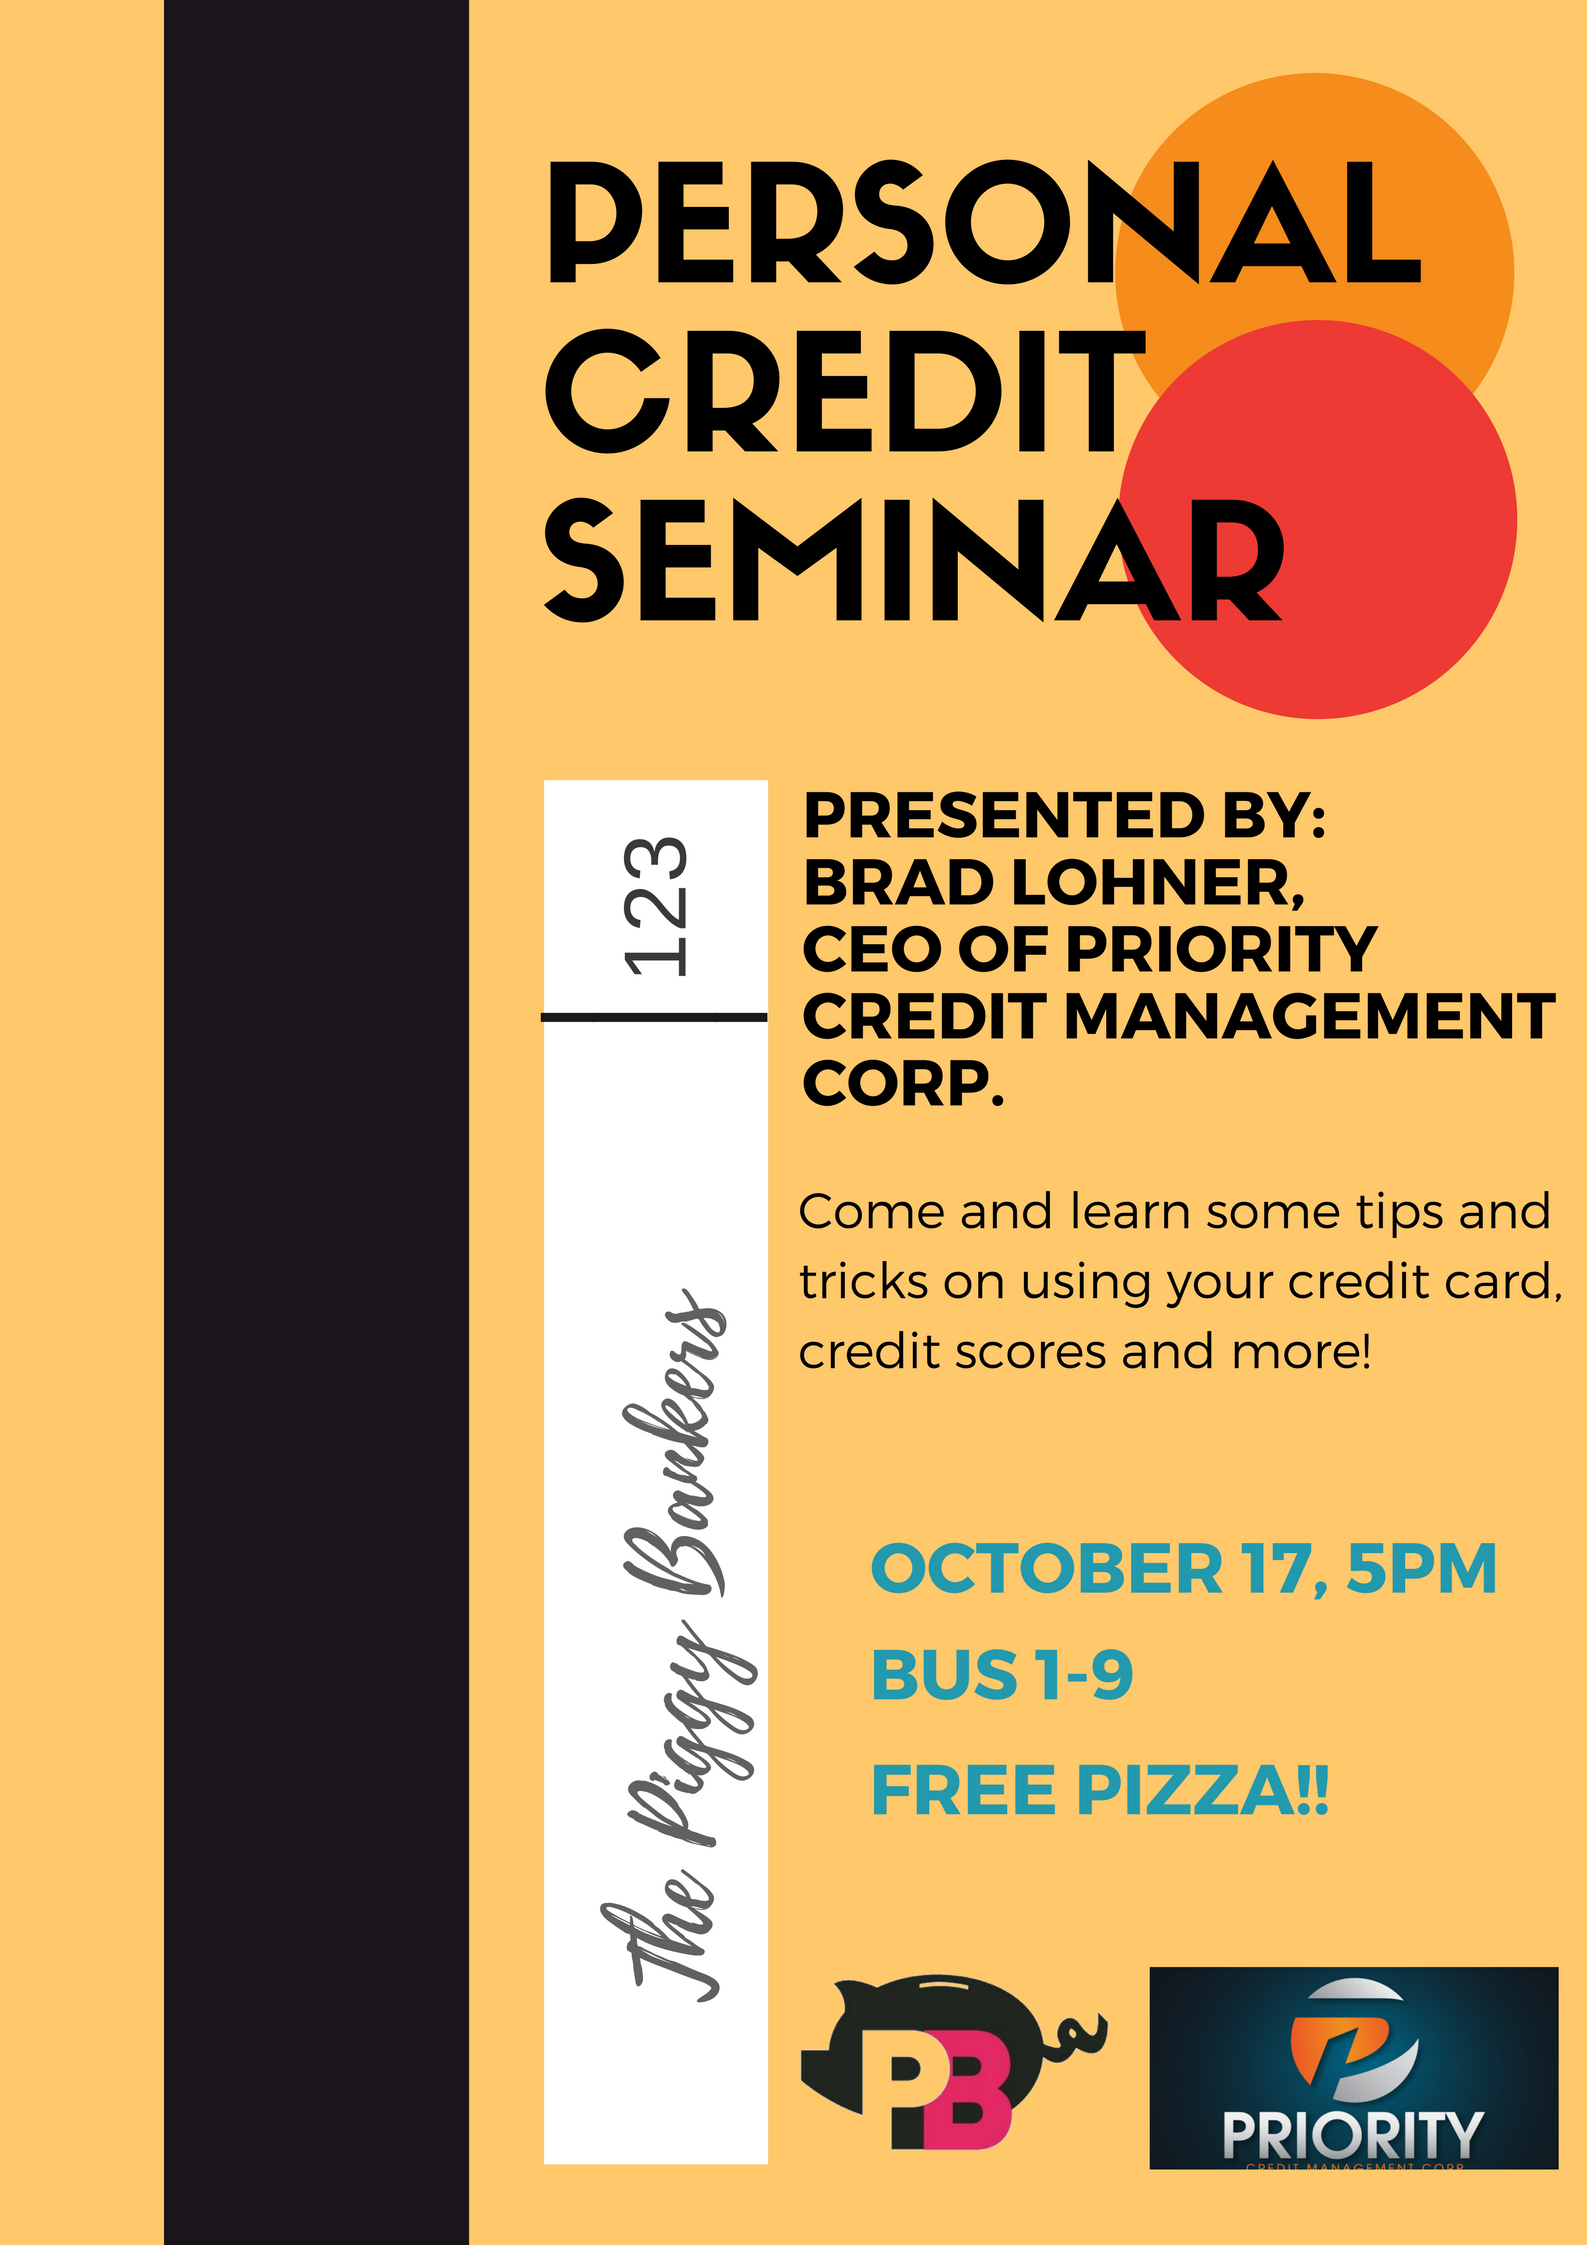 With speaker: Brad Lohner, CEO of the Priority Credit Management Corp.